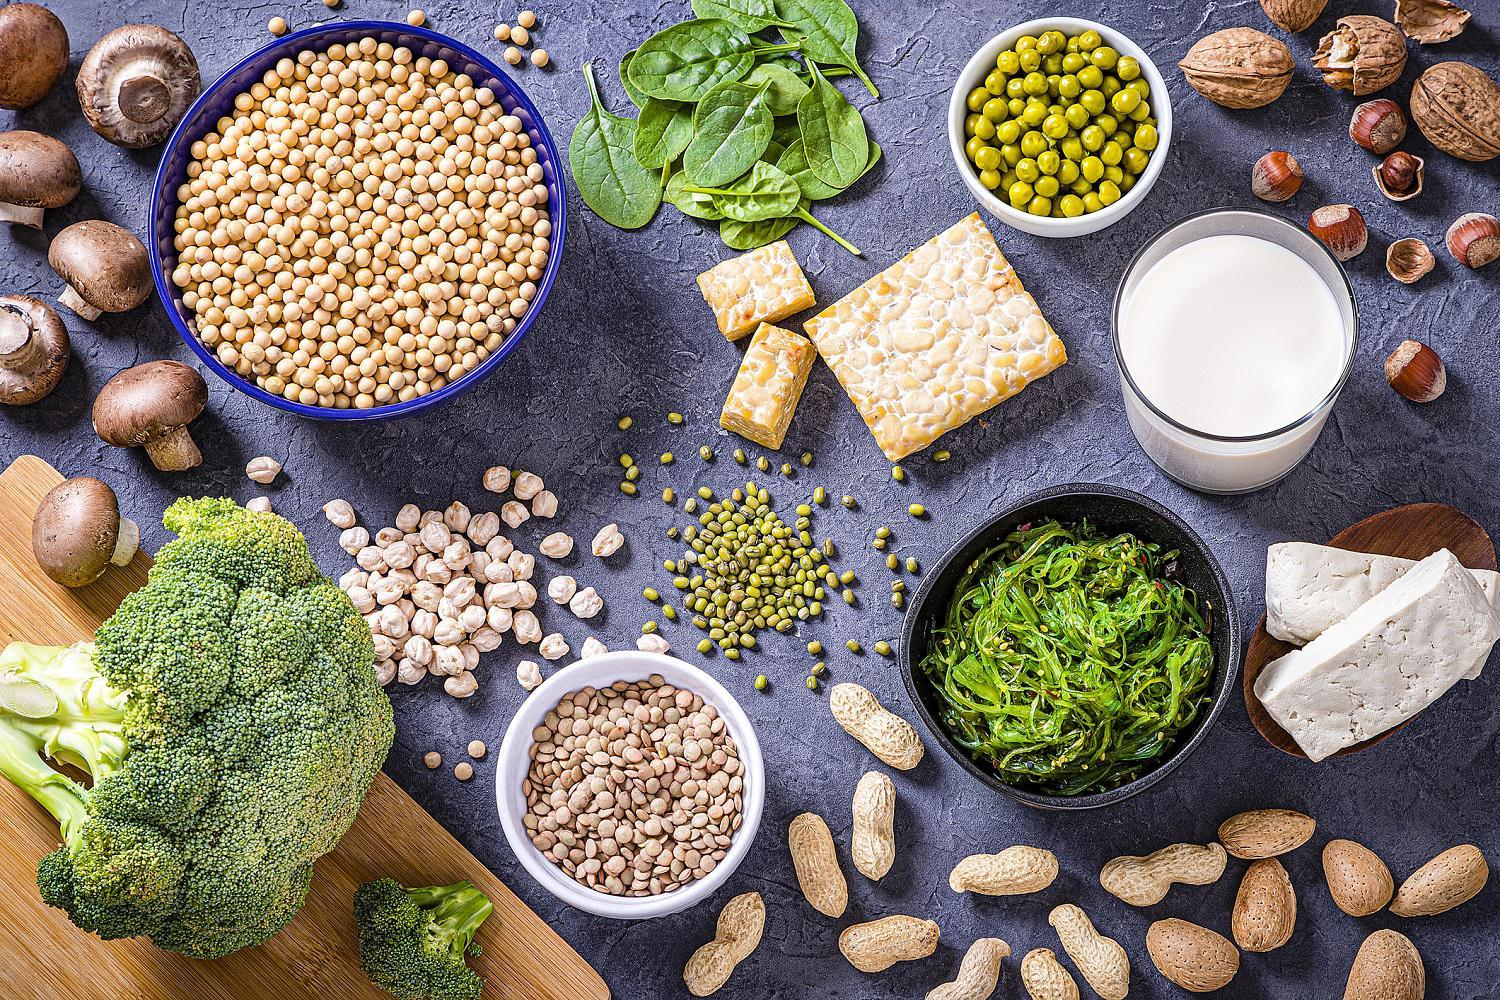 5 Vegan Protein Suppliers That Fill You Up And Give You Strength